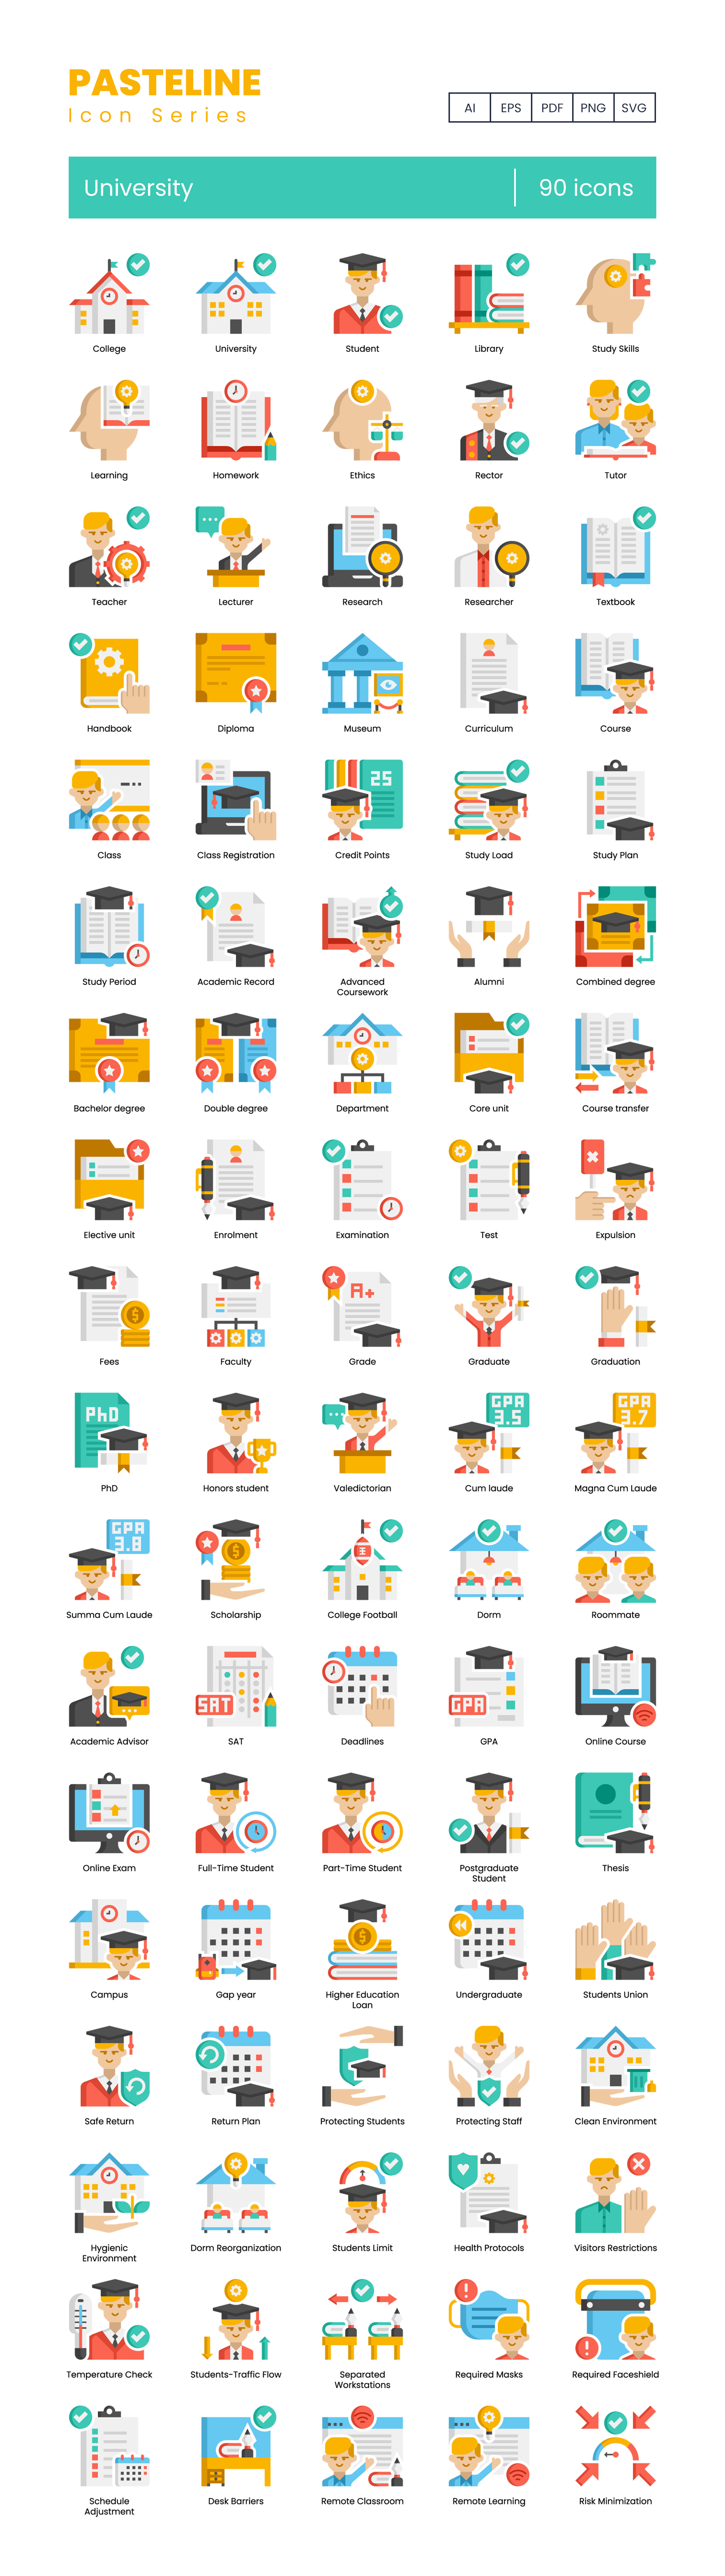 College Vector Icons Preview Image